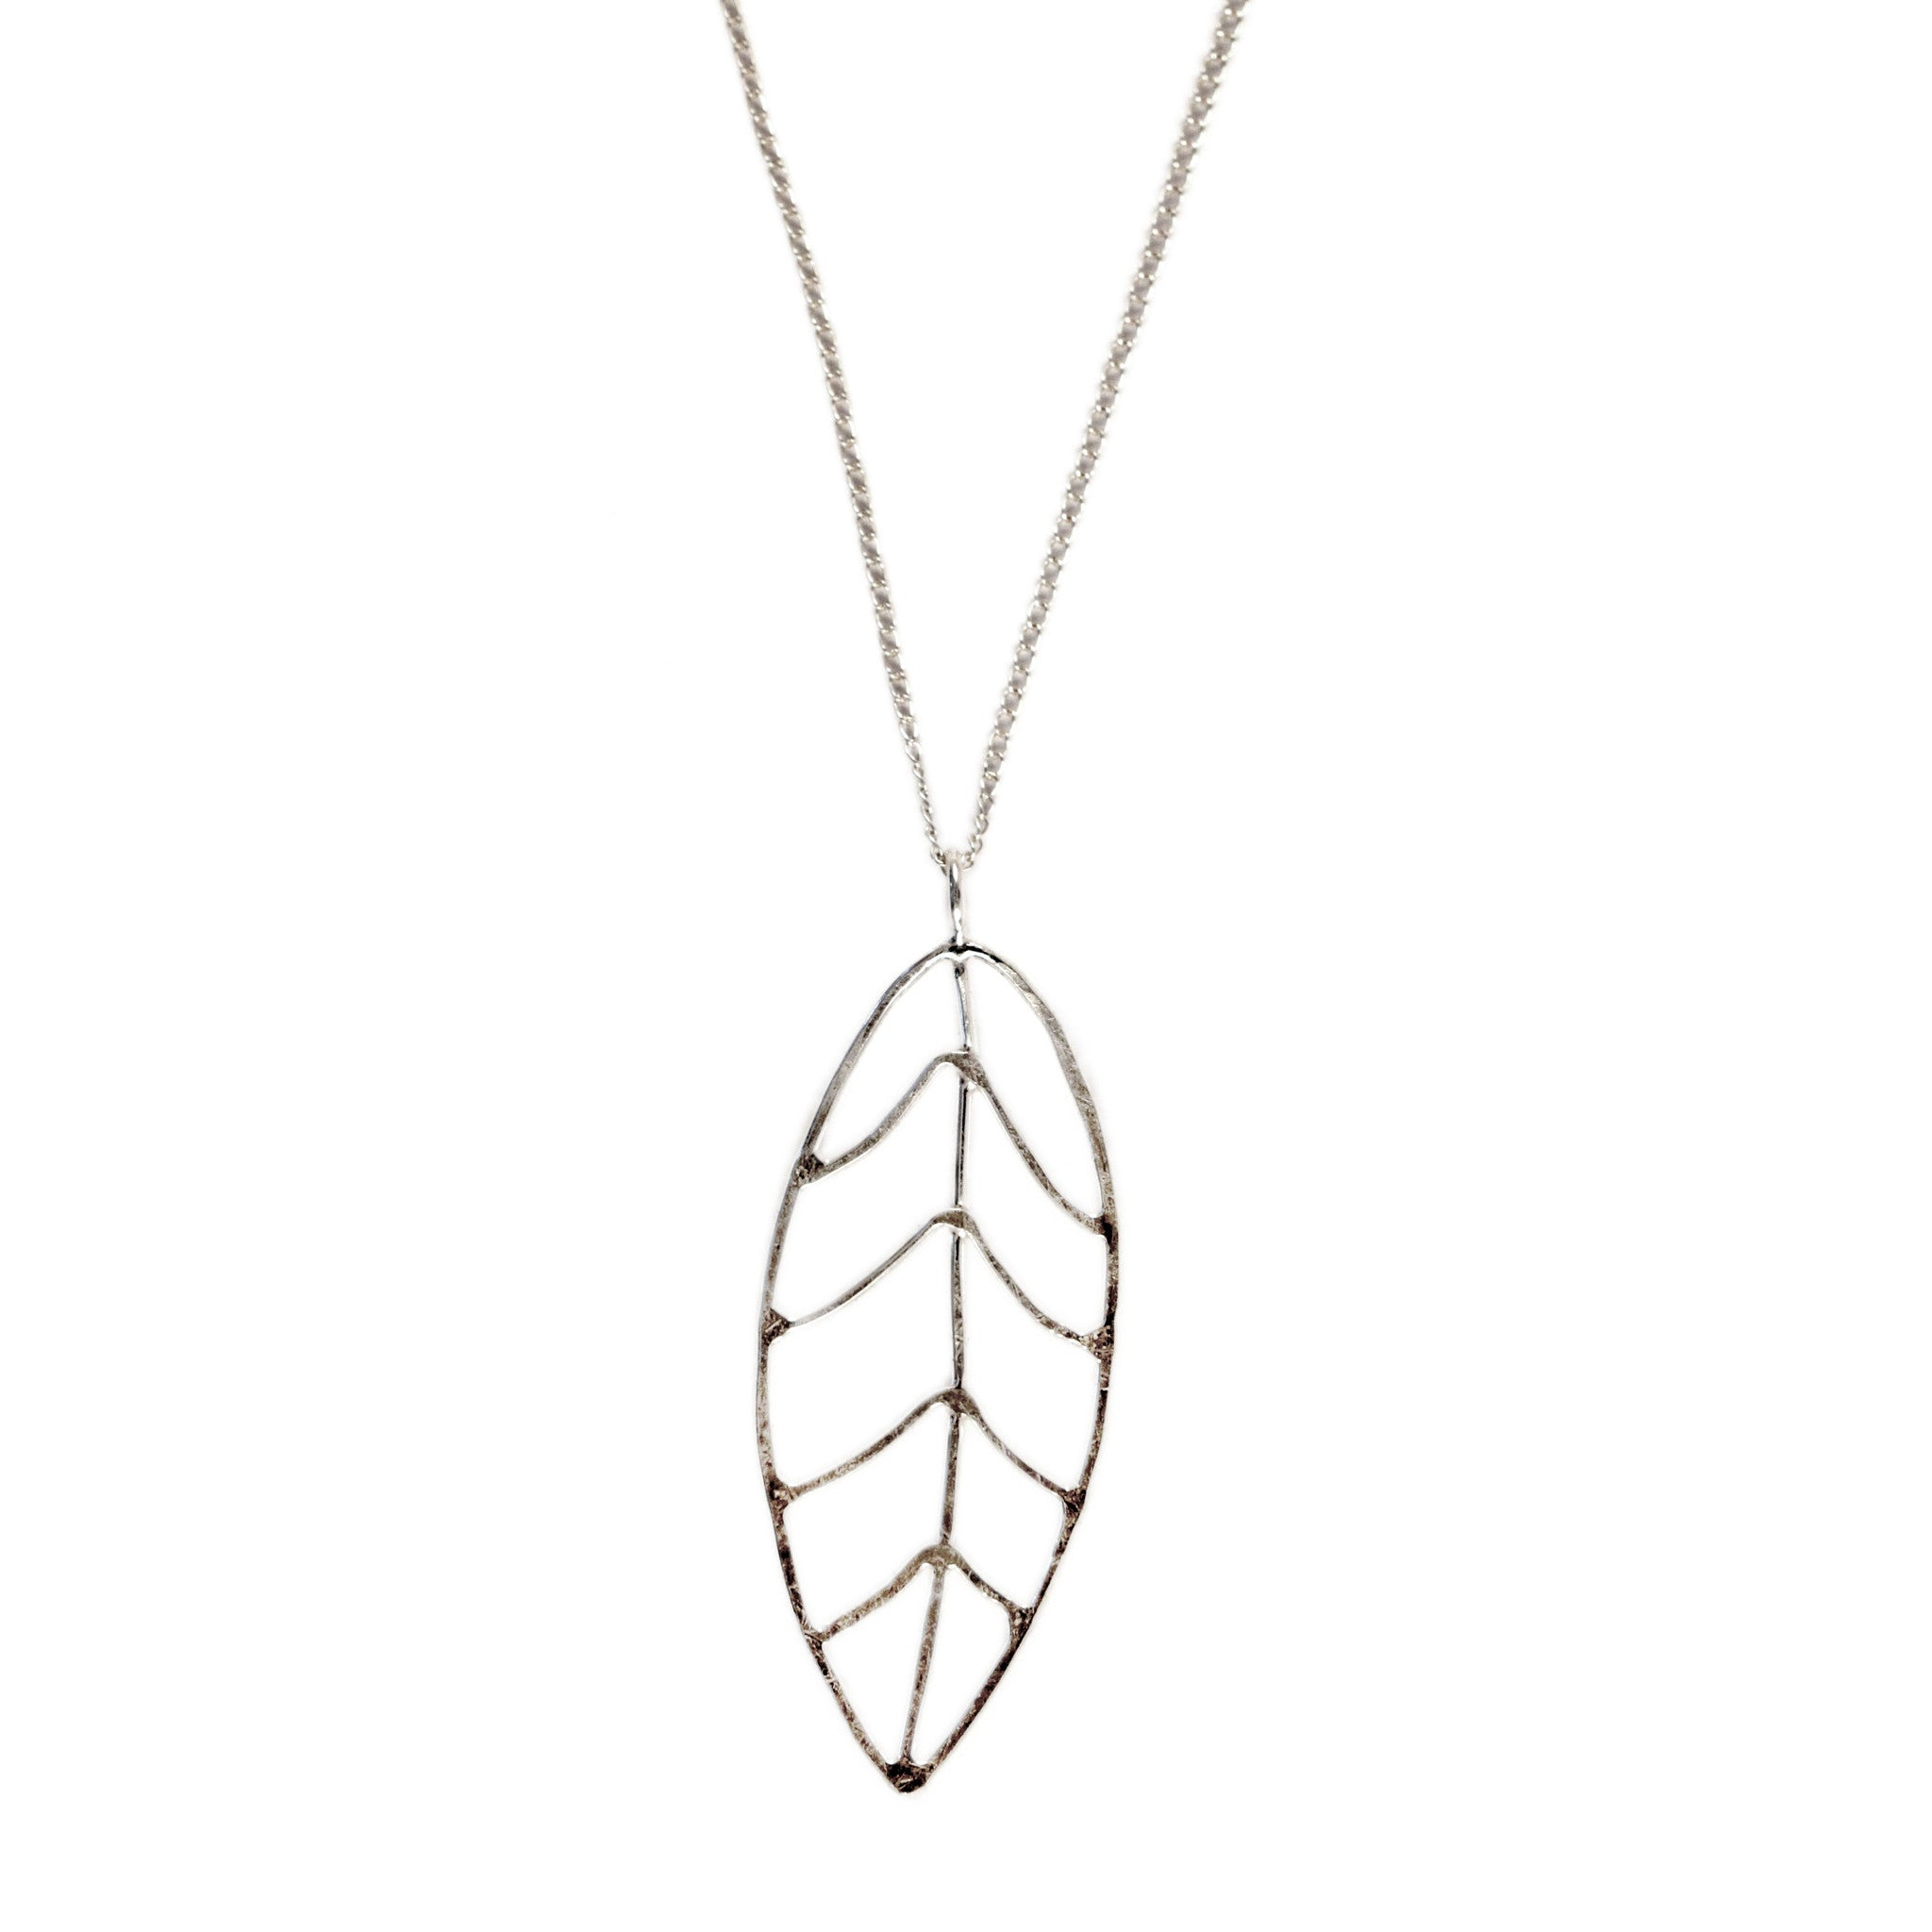 Hammered Leaf Pendant Necklace